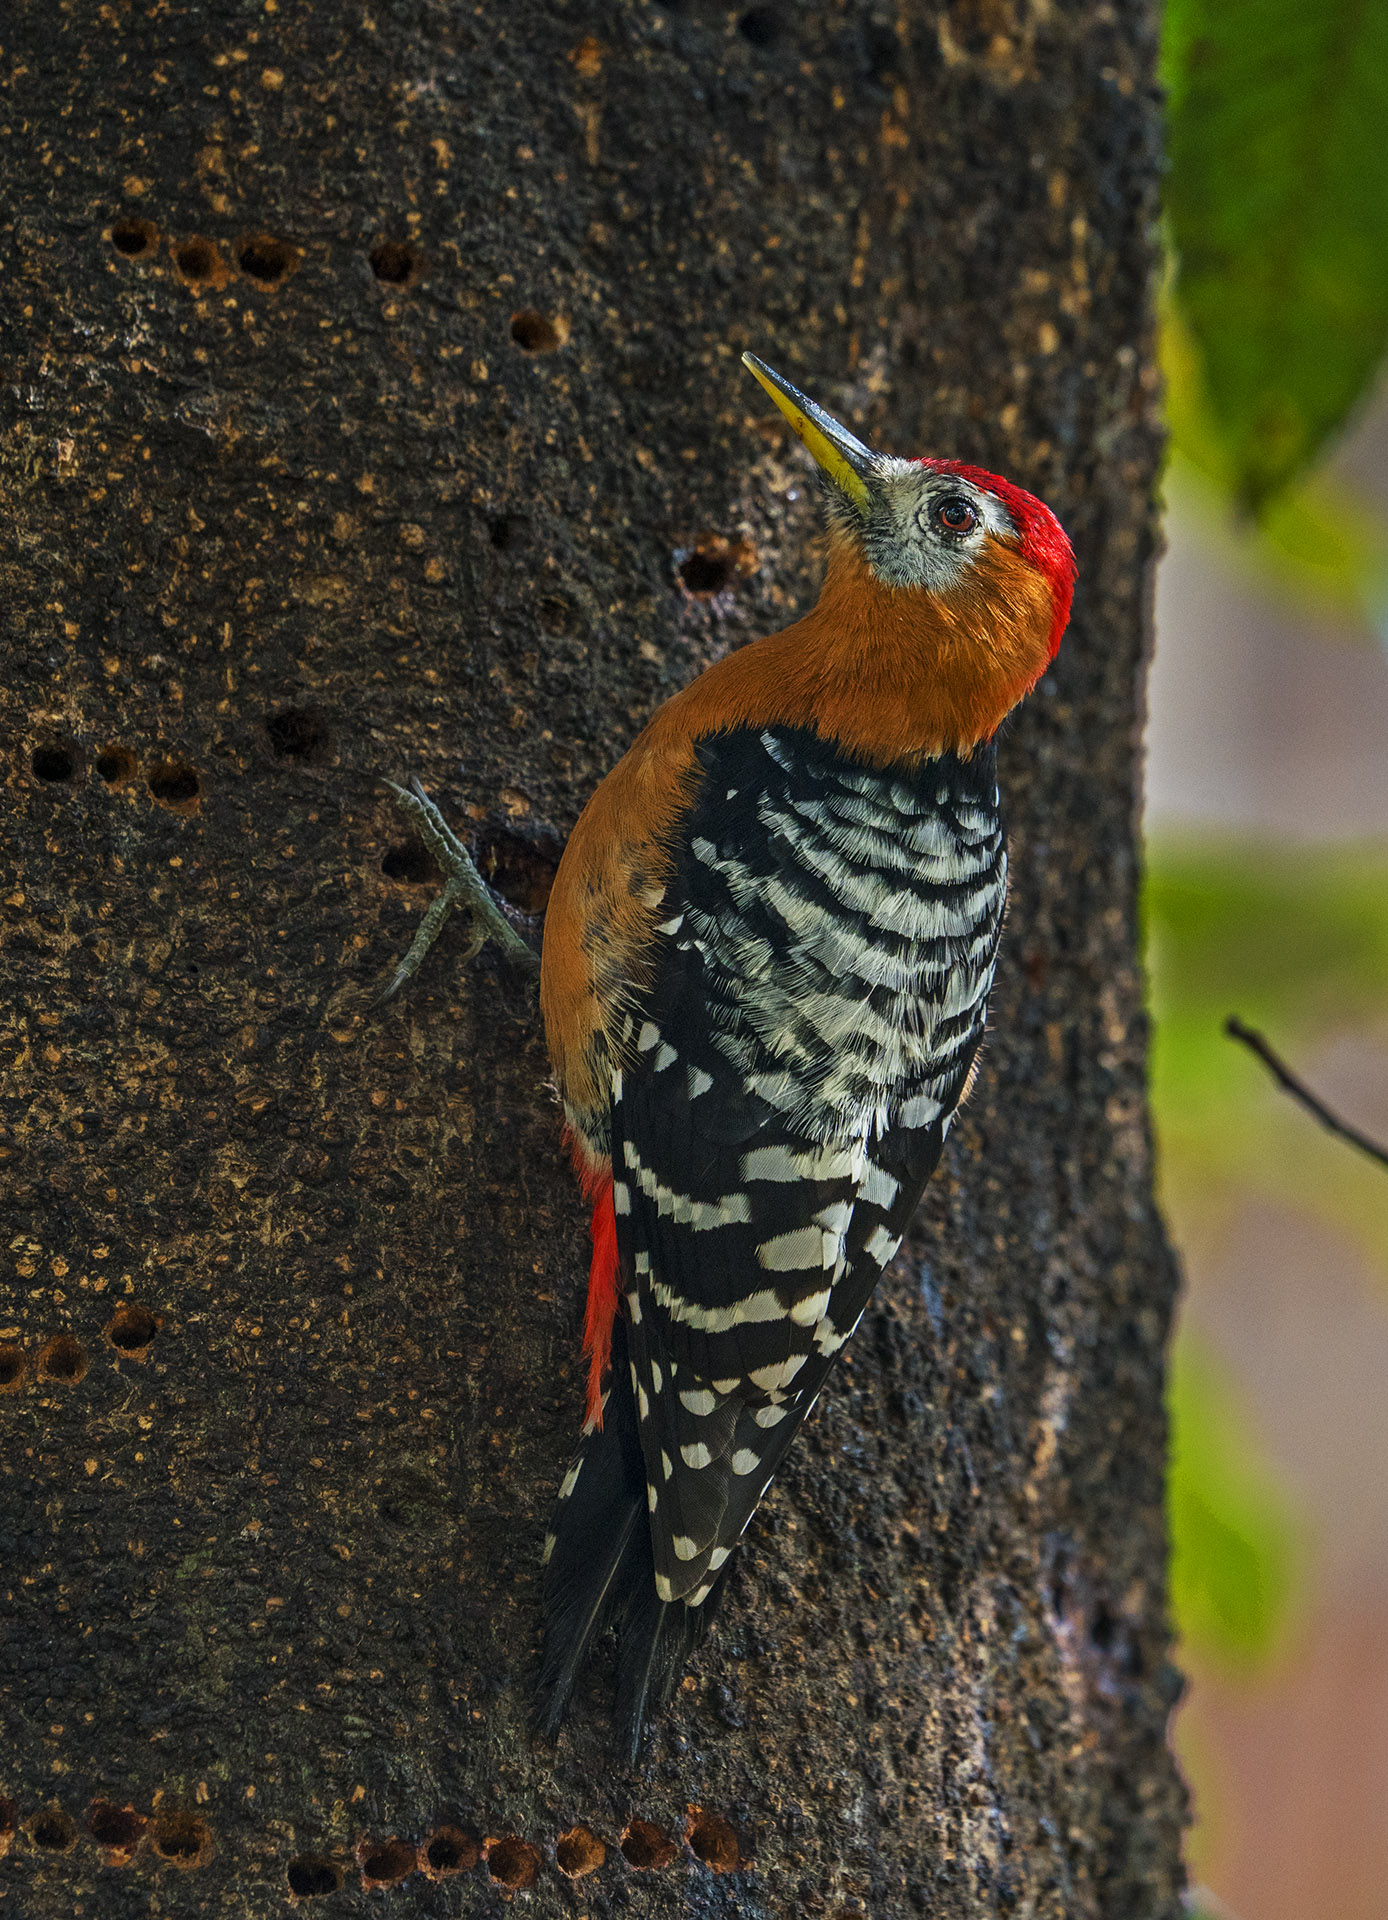 Rufous-bellied woodpeckers have narrow, pointed bills that are coloured grey and yellow. Males are easily recognised because of their red crown. Photo: Dhritiman Mukherjee